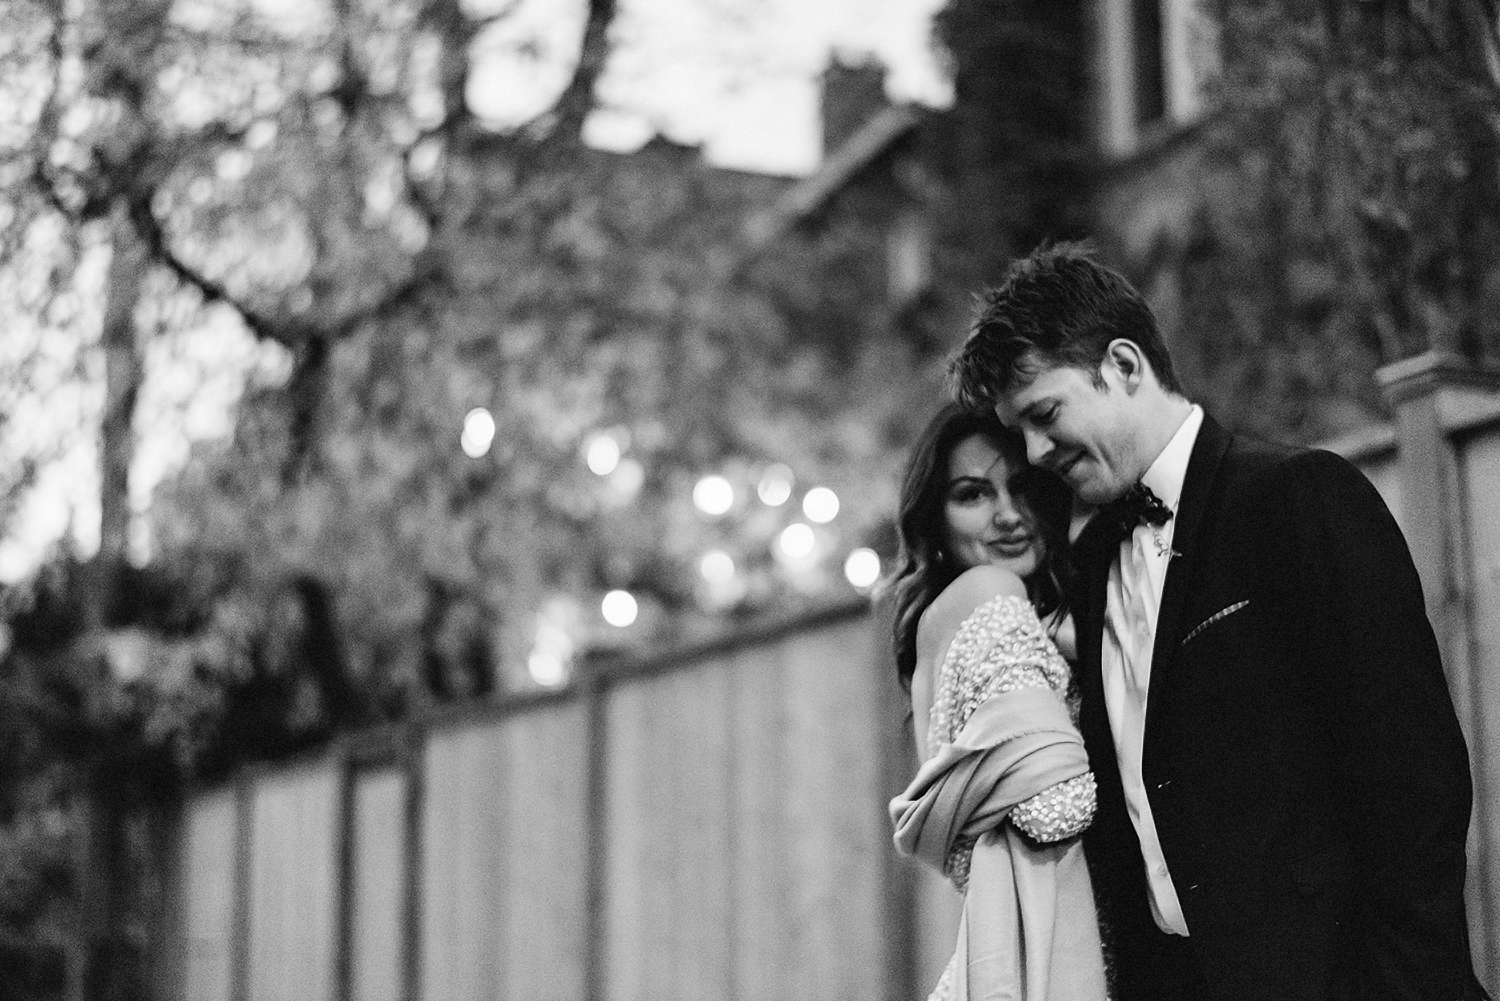 45-Best-Elopement-Photographers-Toronto-Fall-Wedding-Elopement-Modern-Vintage-Hipster-Beauty-Editorial-Portrait.JPG